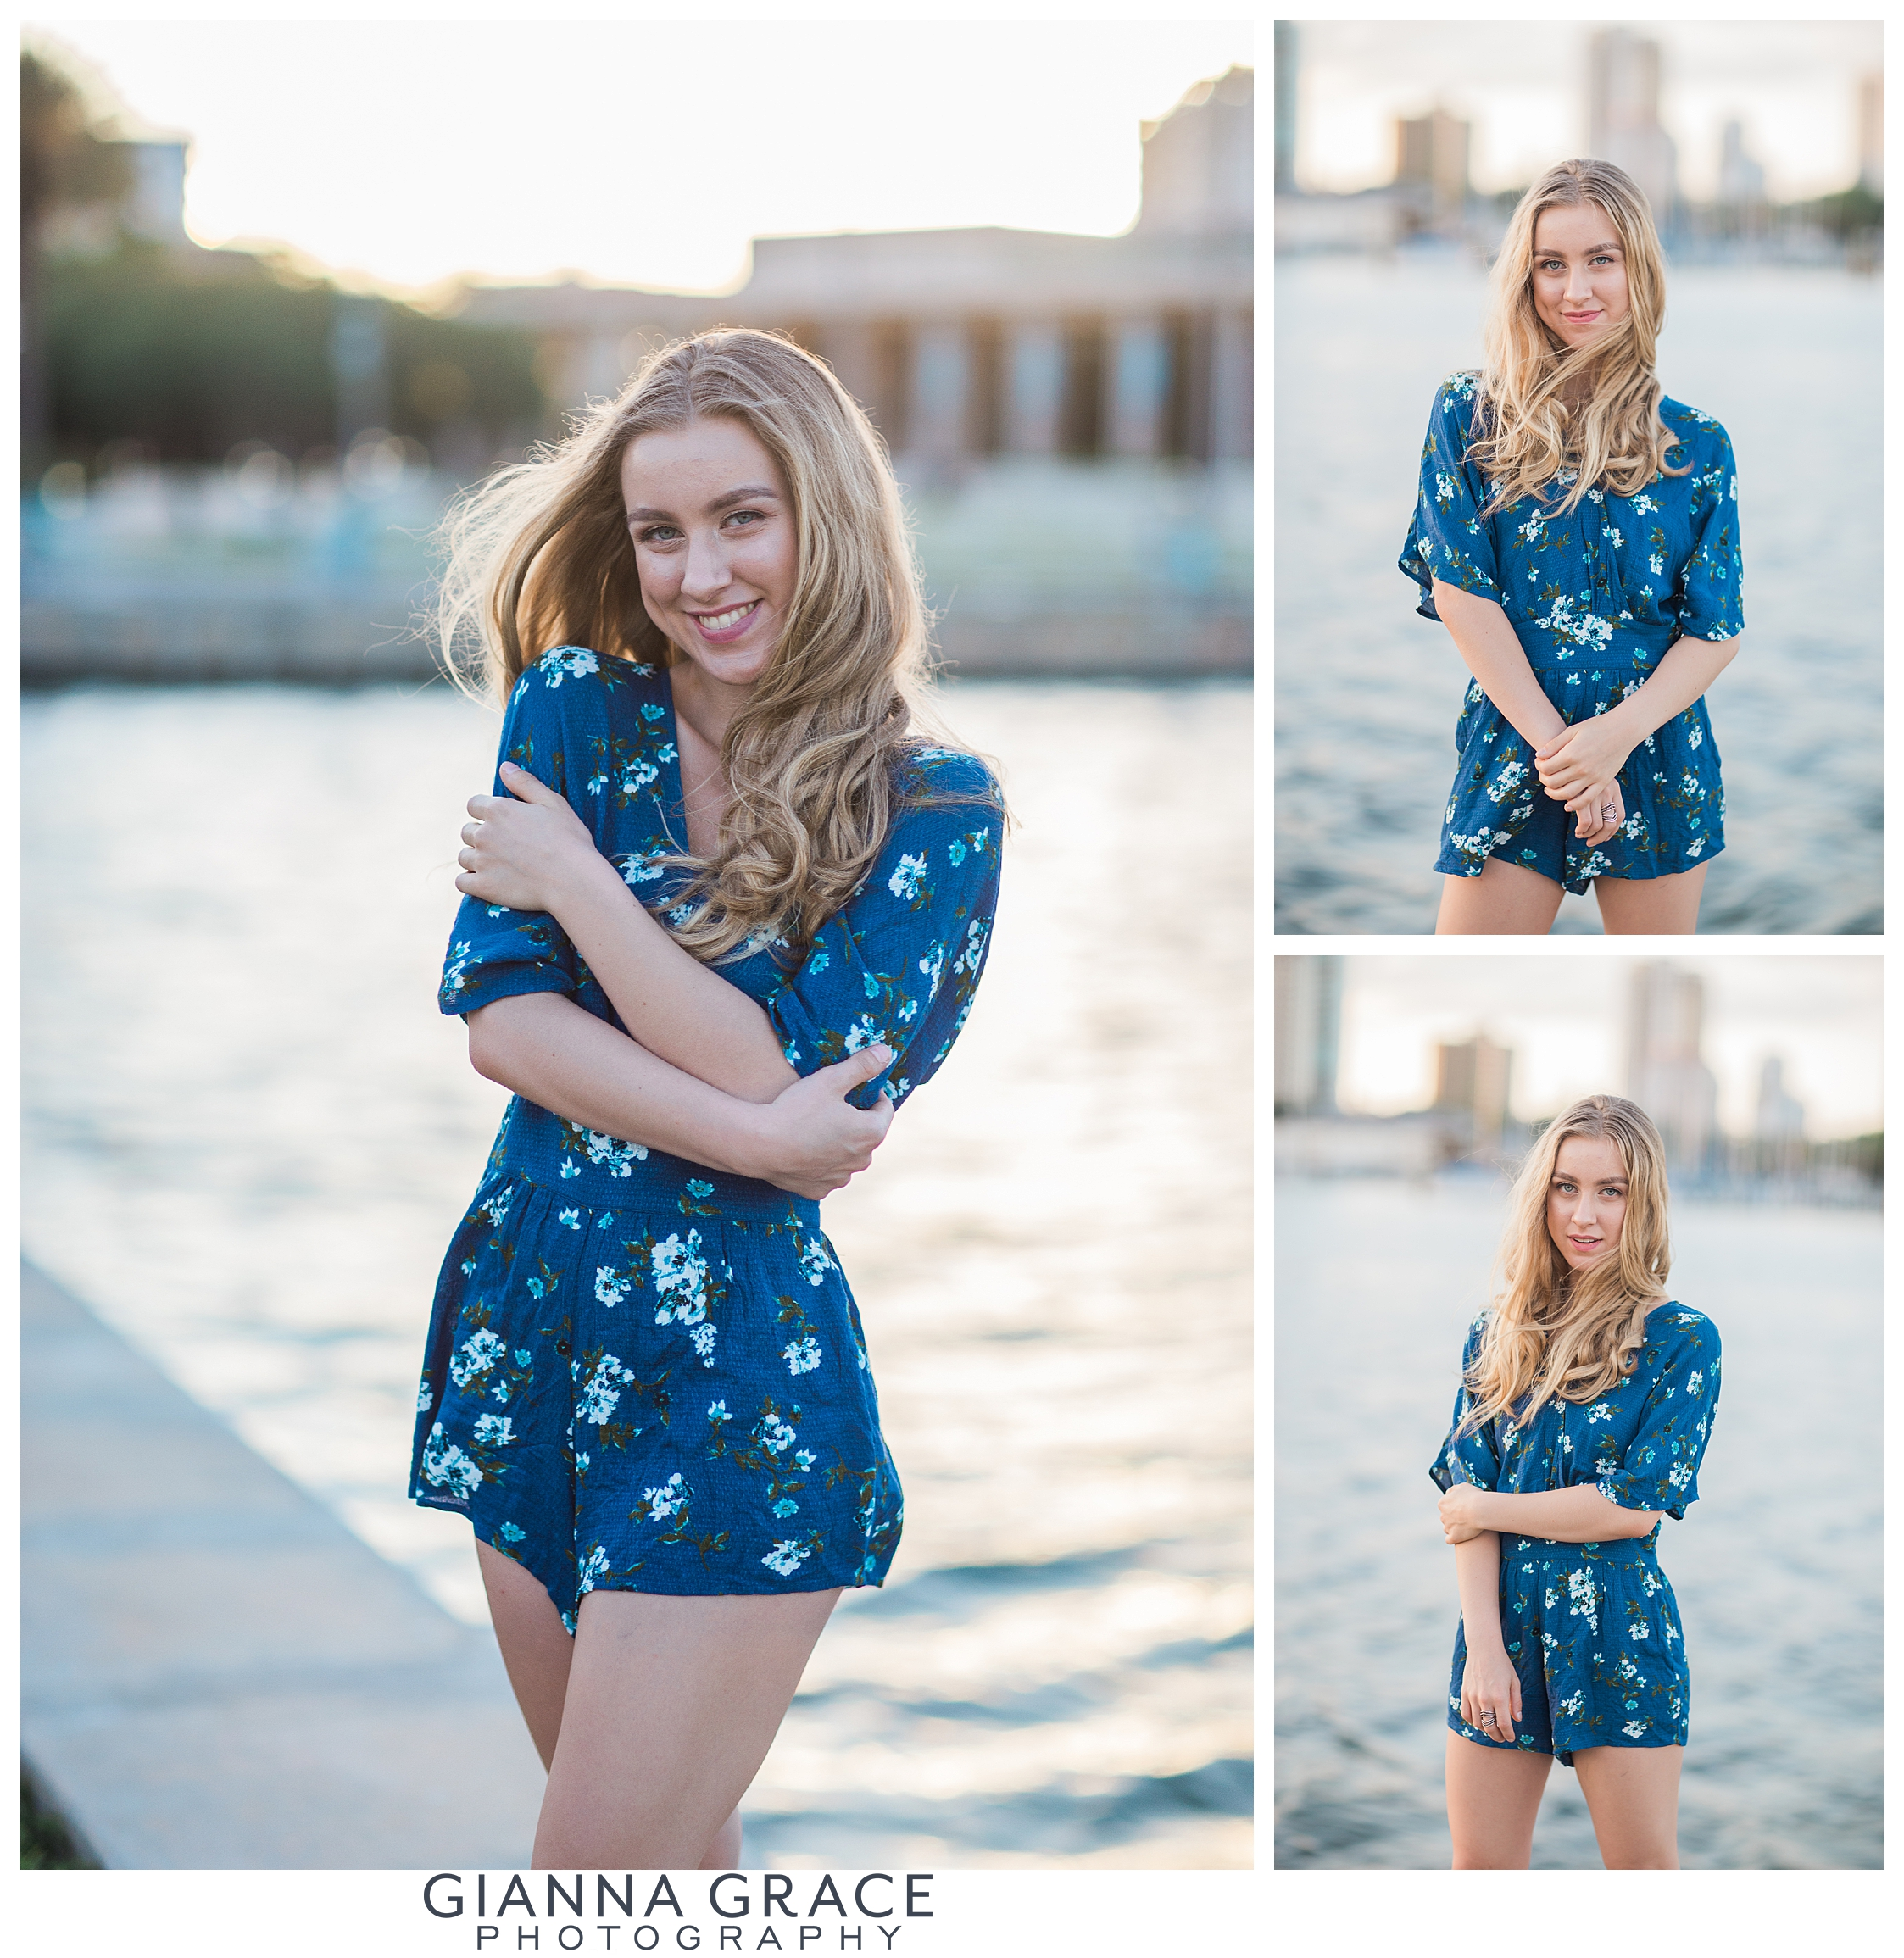 richmond-va-senior-photographer-james-river-senior-pics_0010